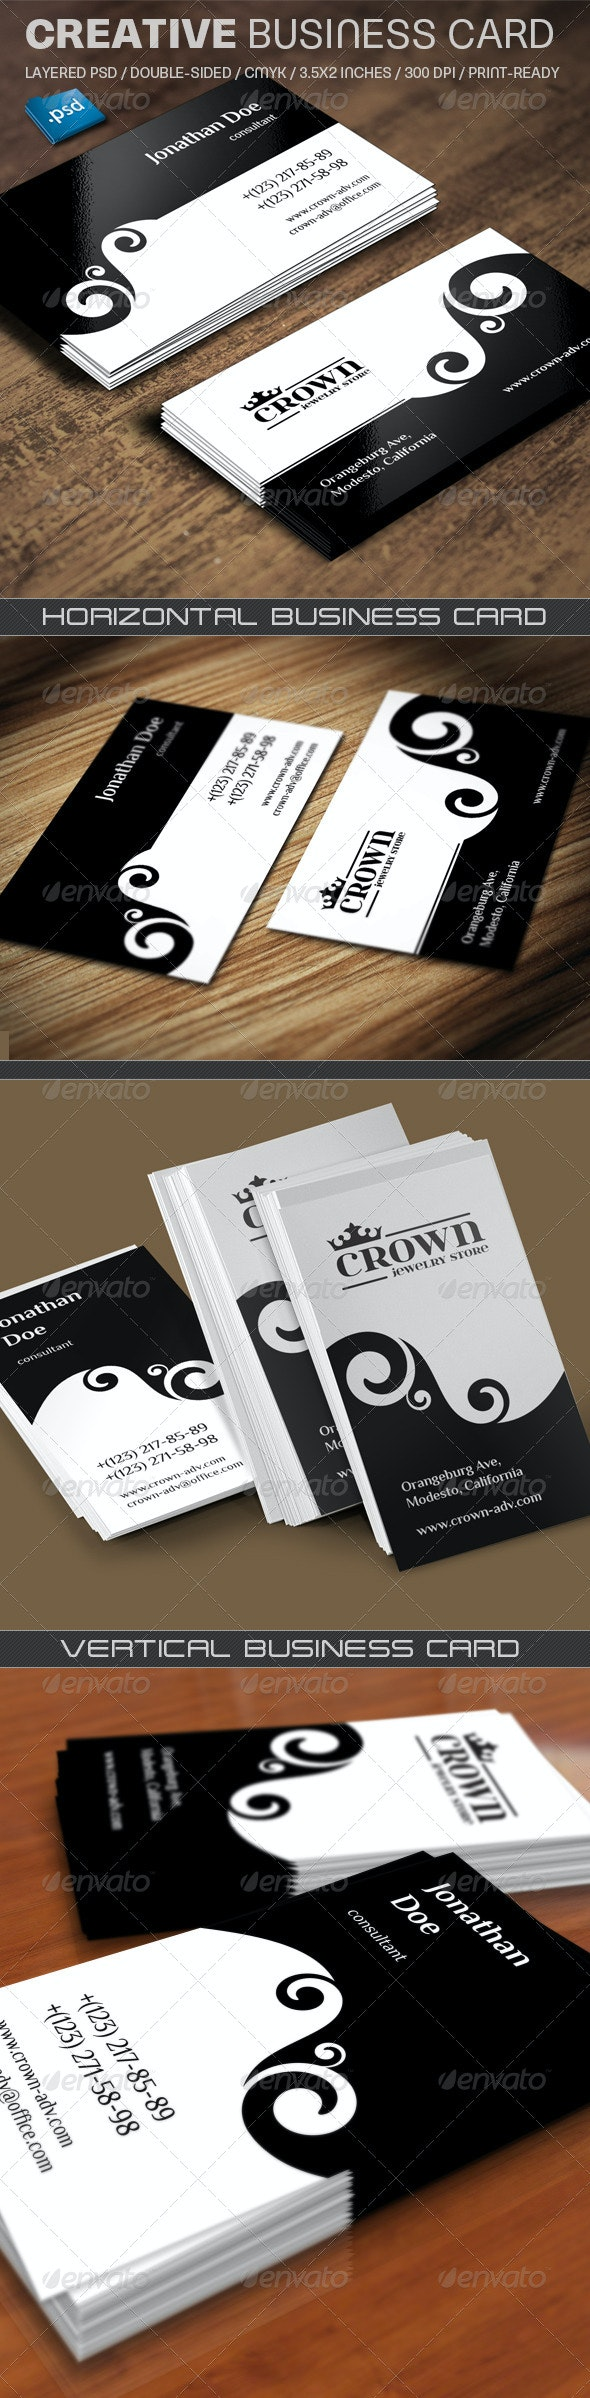 Creative Business Card - Retro/Vintage Business Cards